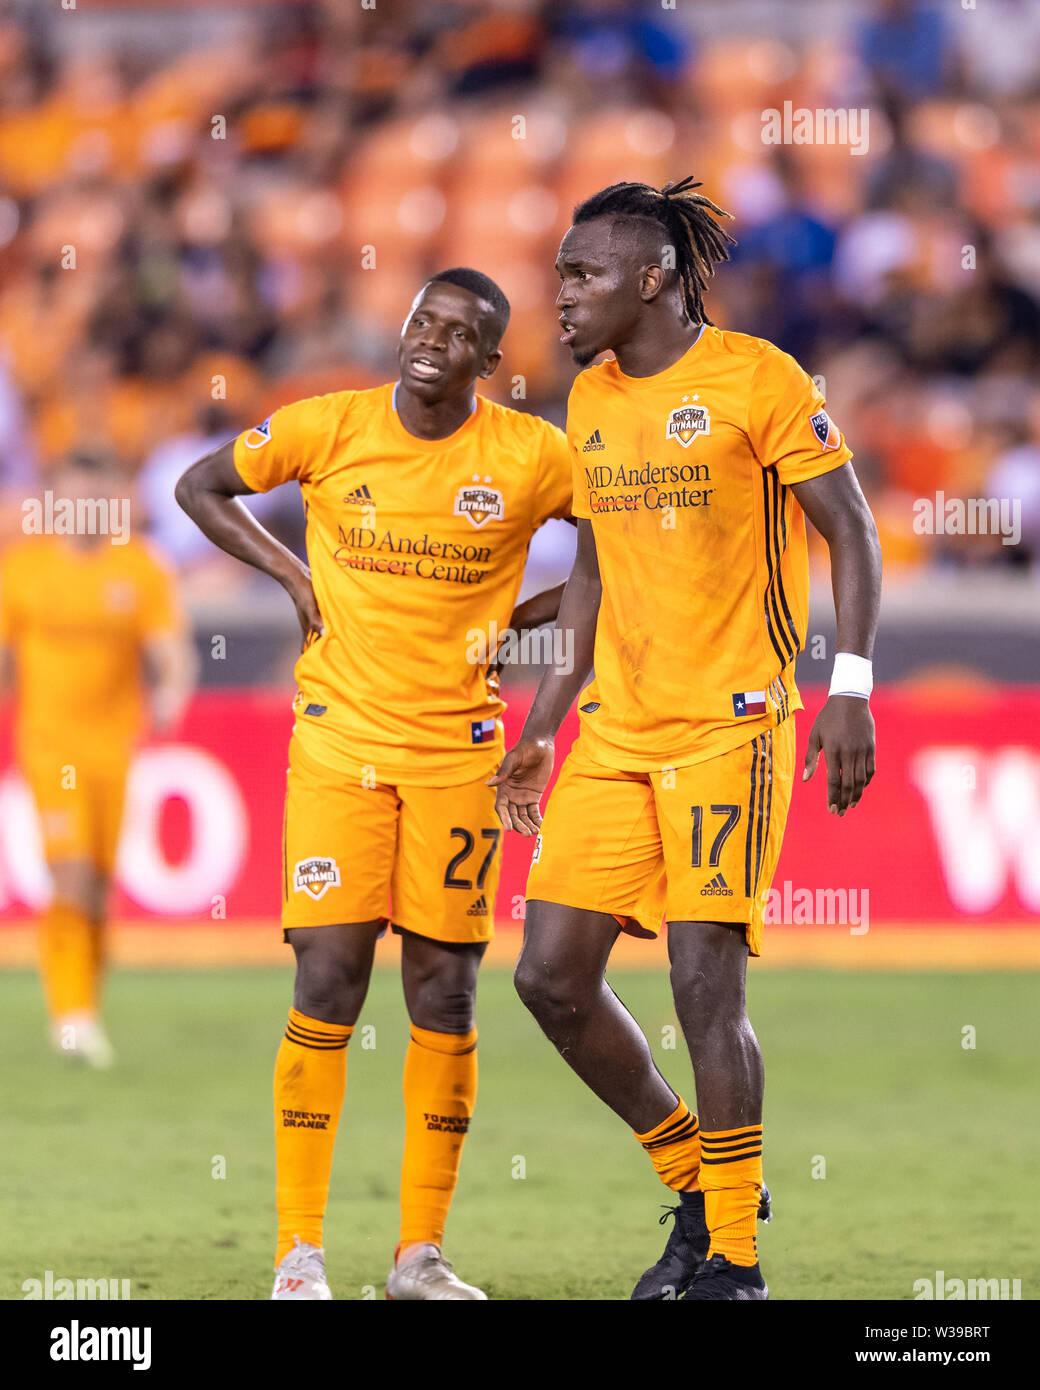 Houston, Texas, USA. 12th July, 2019. Houston Dynamo midfielder Oscar Boniek Garcia (27) and forward Alberth Elis (17) wait to clear a decision from the referee during a match between Los Angeles FC and Houston Dynamo at BBVA Stadium in Houston, Texas. The final LAFC wins 3-1. Maria Lysaker/CSM/Alamy Live News - Stock Image